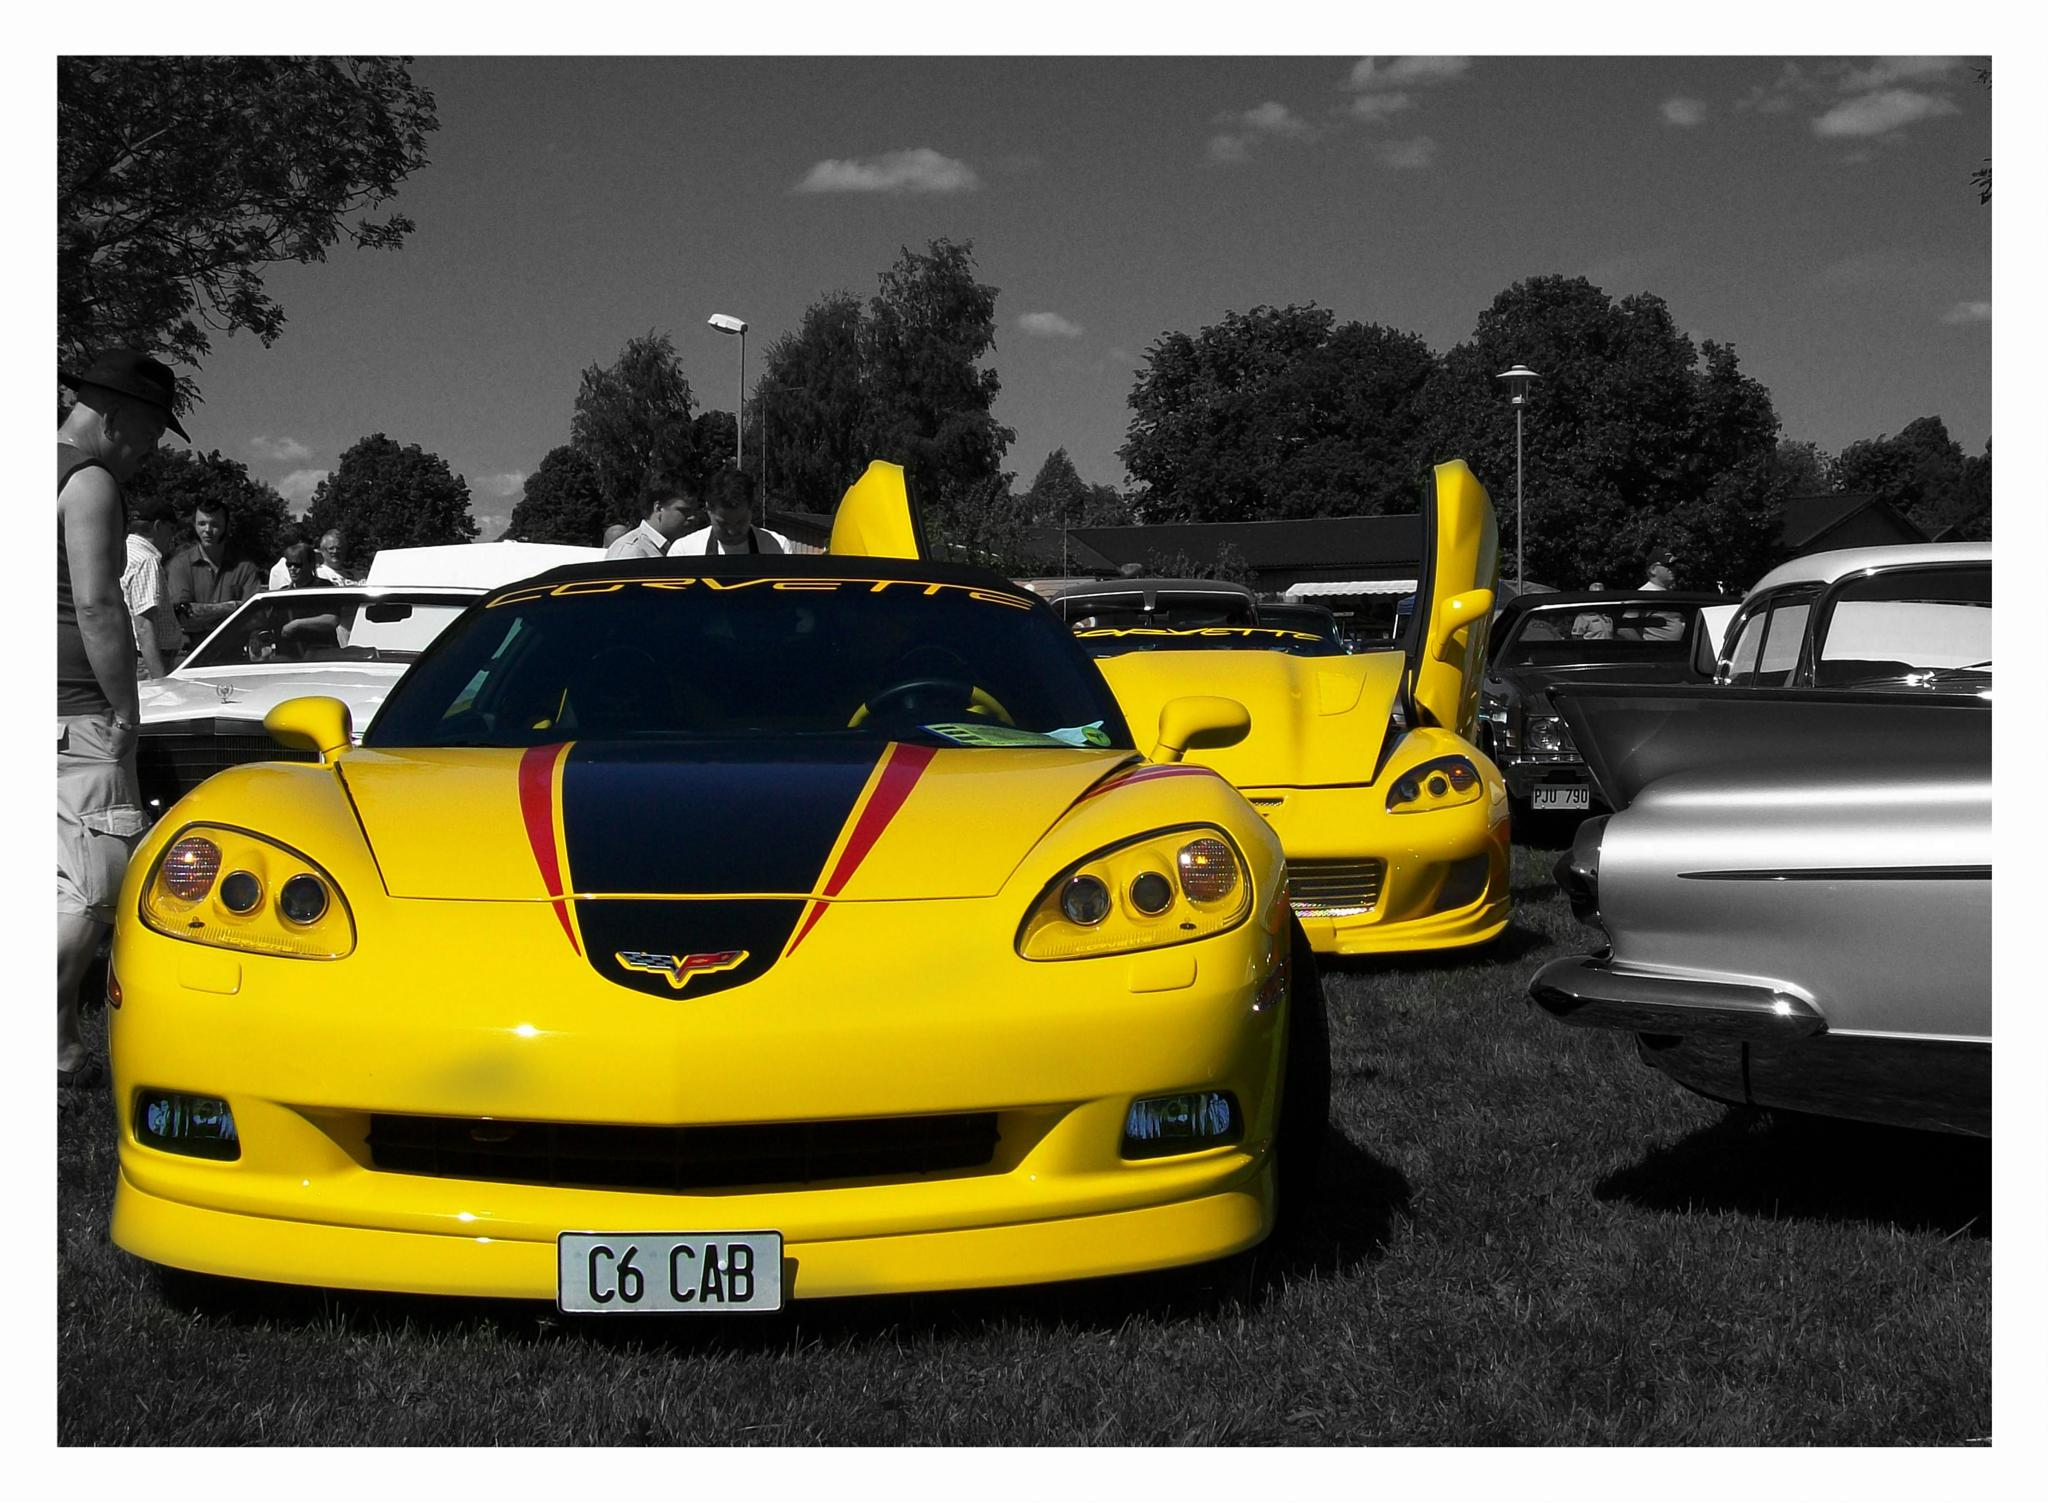 Who likes their C6 Corvette? by Linda Persson